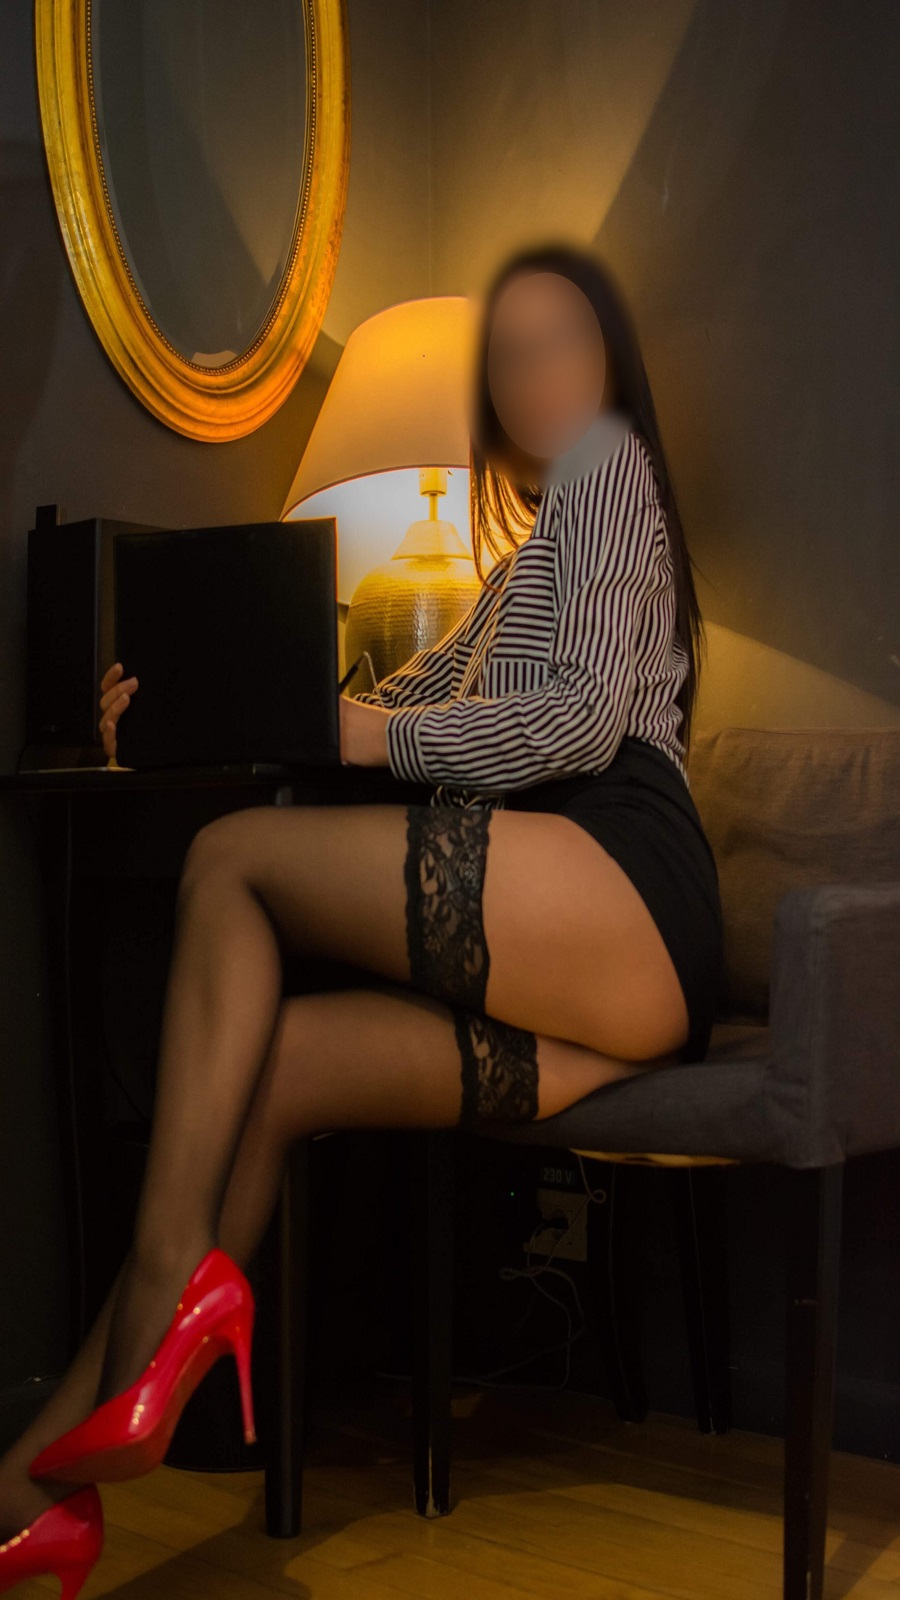 If you are looking for the perfect companion tonight give us a call on 07399733096 to book Adriana for the best night of your life.